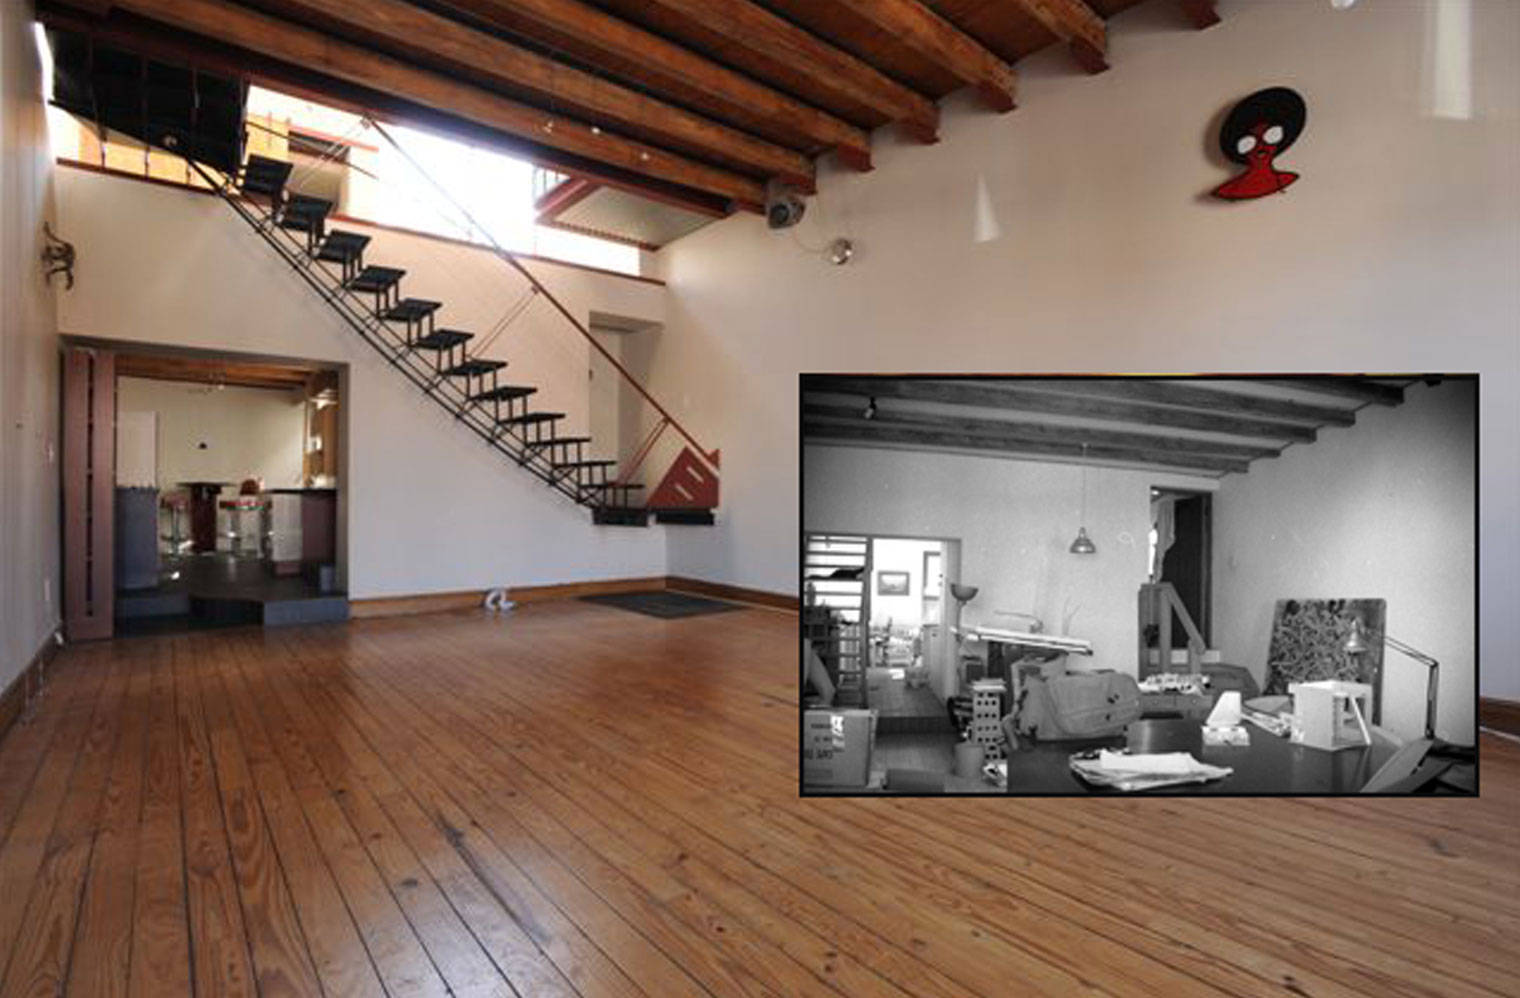 45 Leeuwen Street - 'before and after'